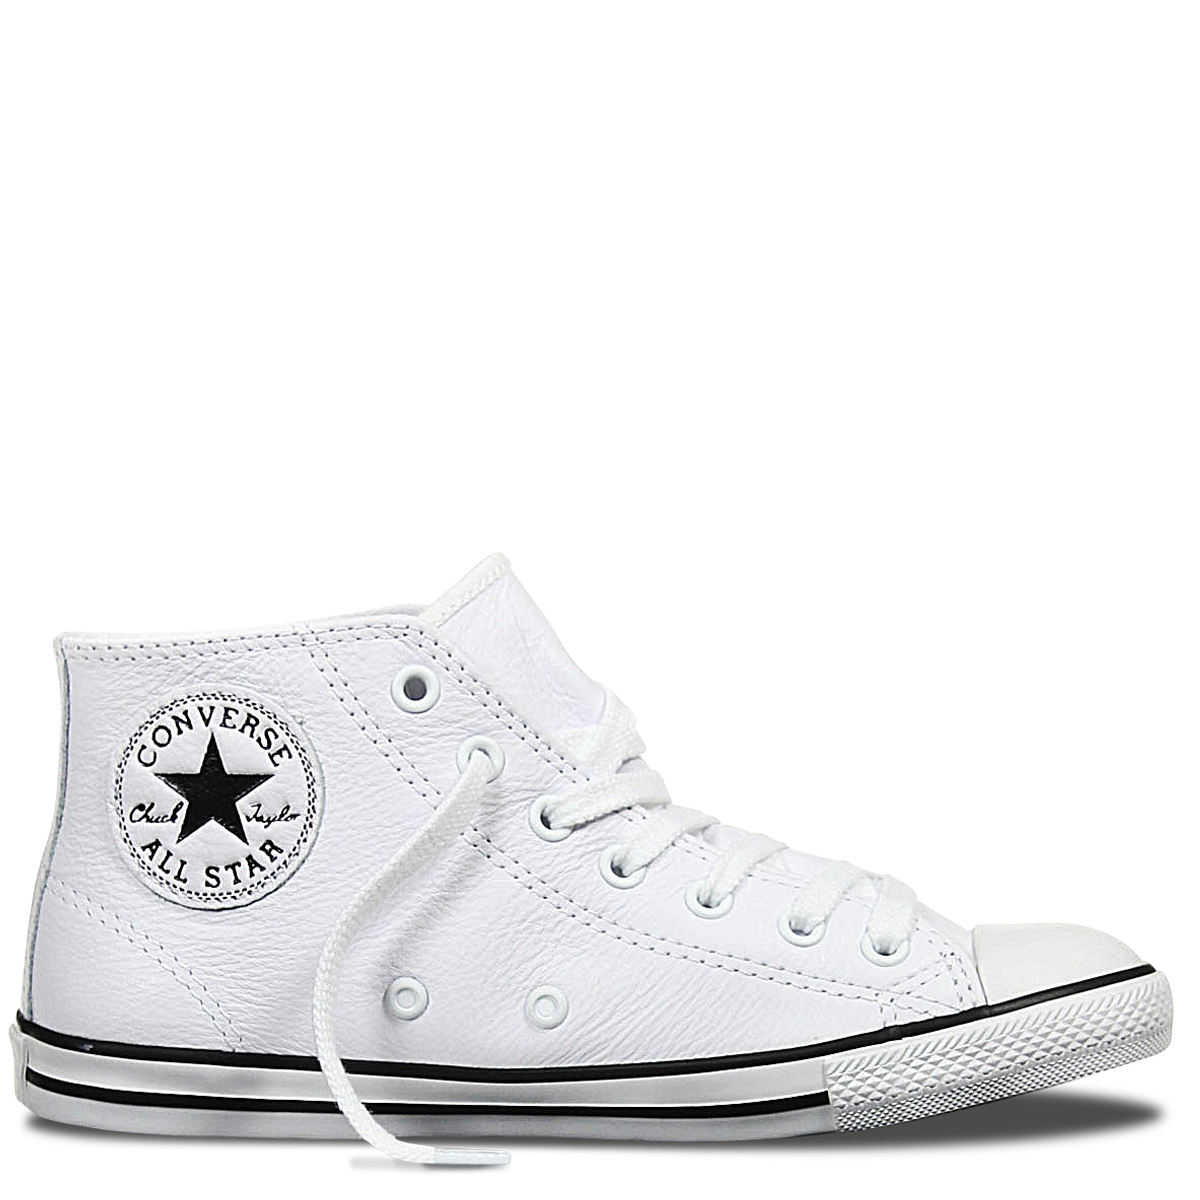 629aec1fe7d1e8 Chuck Taylor All Star Dainty Leather Mid White